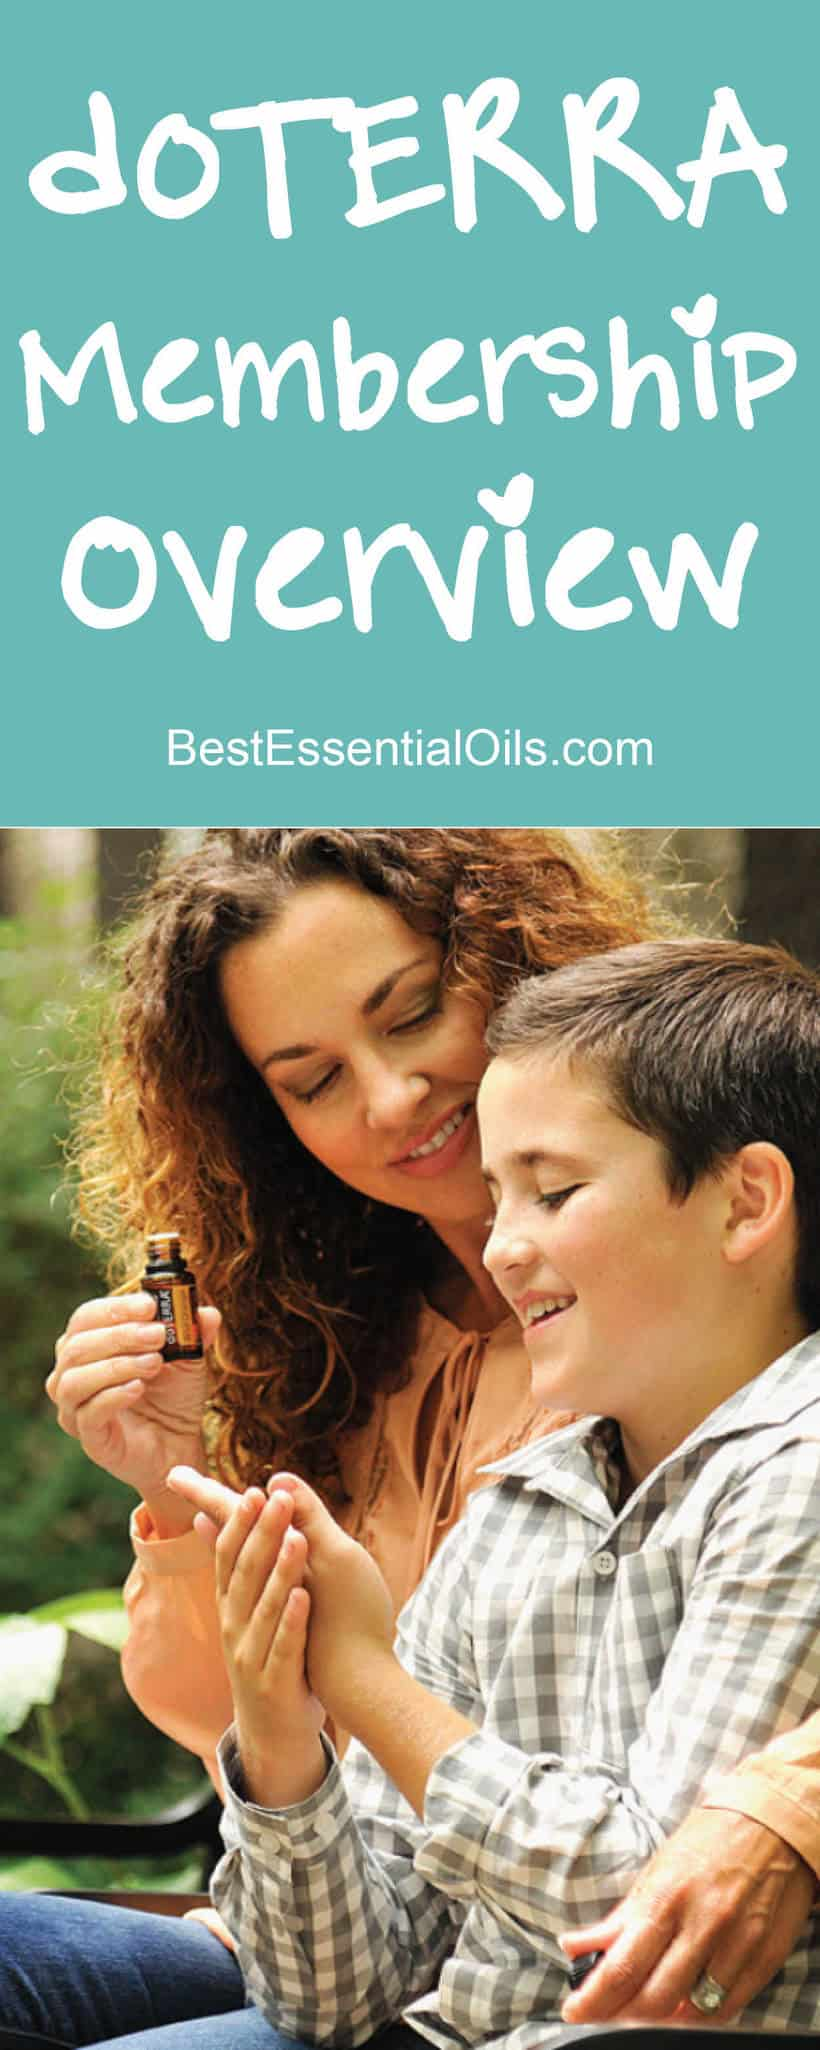 doTERRA Sign Up FAQs  and doTERRA Membership Overview including instructions on how to join doTERRA, doTERRA enrollment form, where to buy doTERRA, doTERRA enrollment, doTERRA reviews, promotions, how much it costs, enrollment kits and tons of questions and answers.